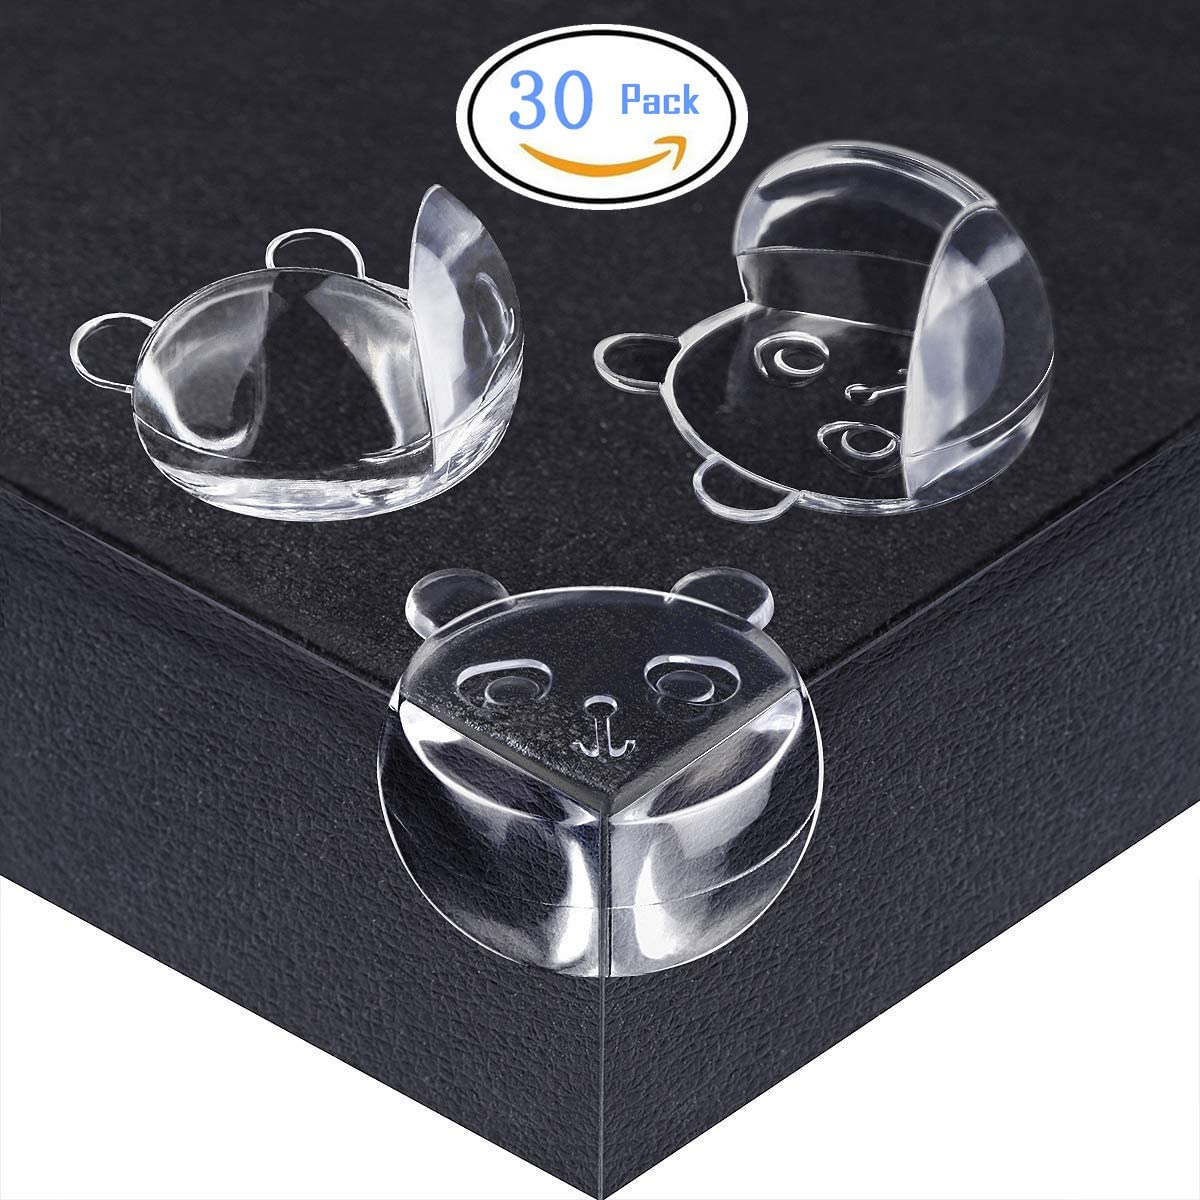 ITTA 30 Pack Corner Protectors For Kids Child Corner Guards For Table Furniture Safety Corners Desk Protector Lovely Bear Clear Corner Guards